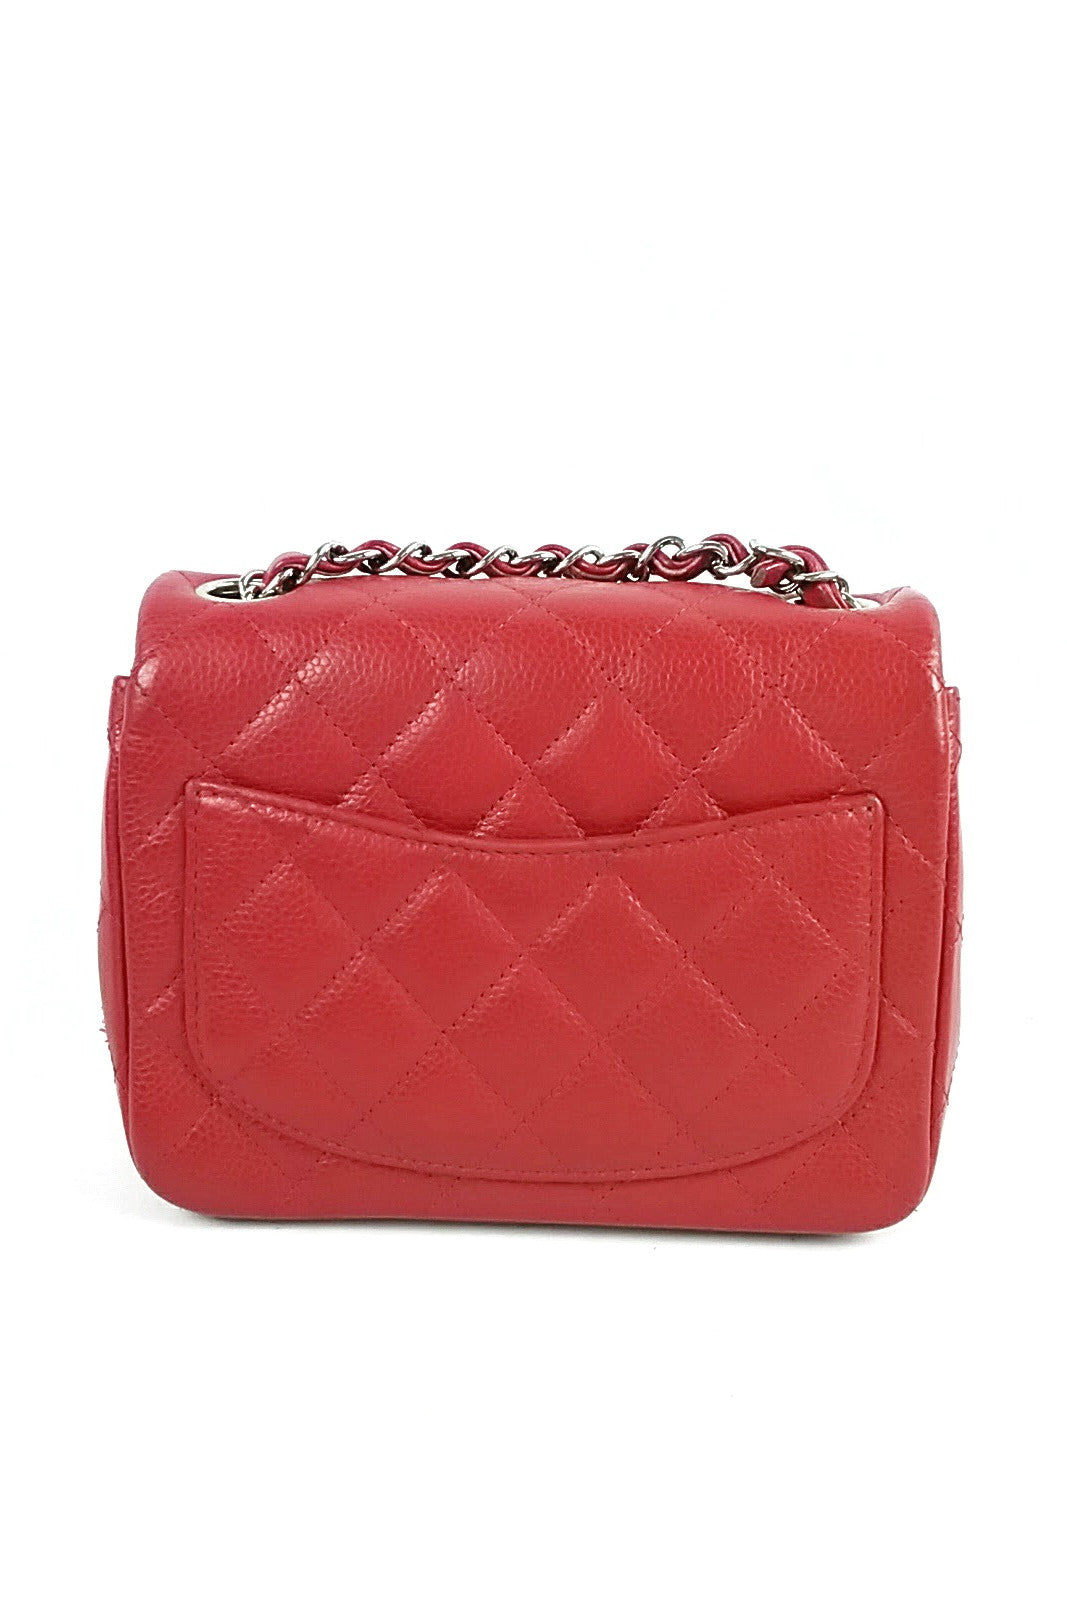 Red Caviar Quilted Mini Flap Bag